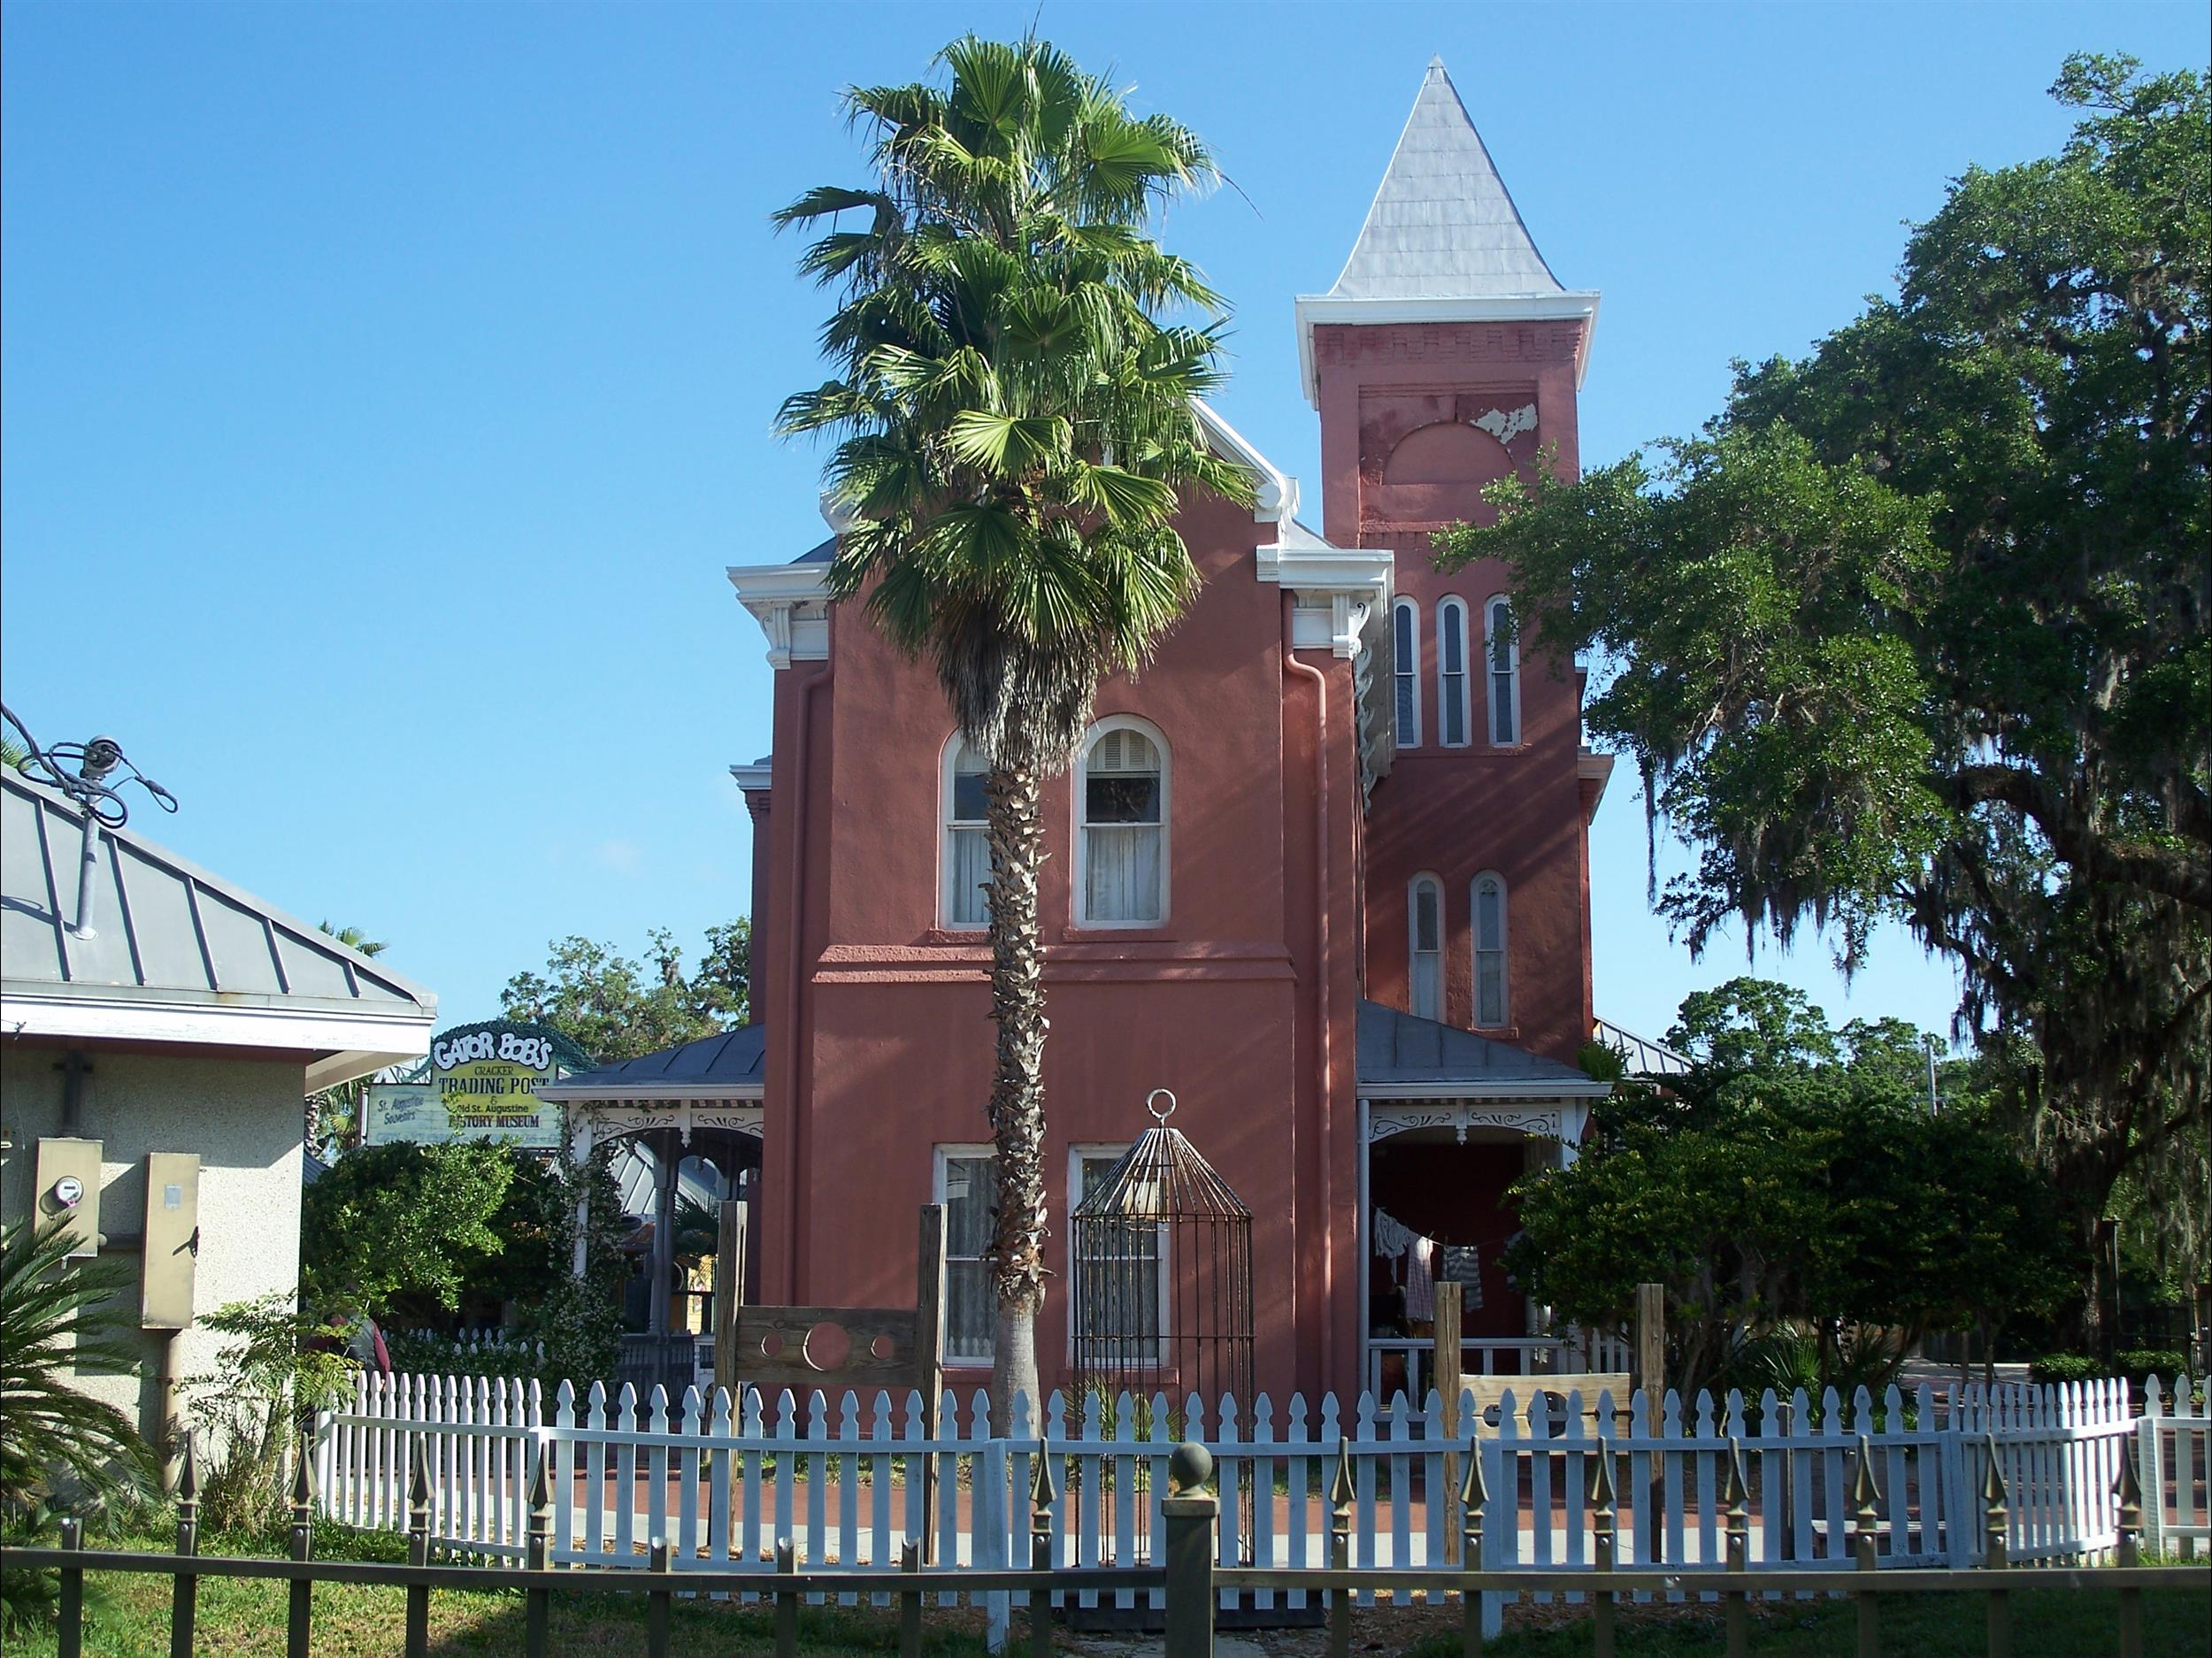 Authentic Old Jail - St. Augustine, FL